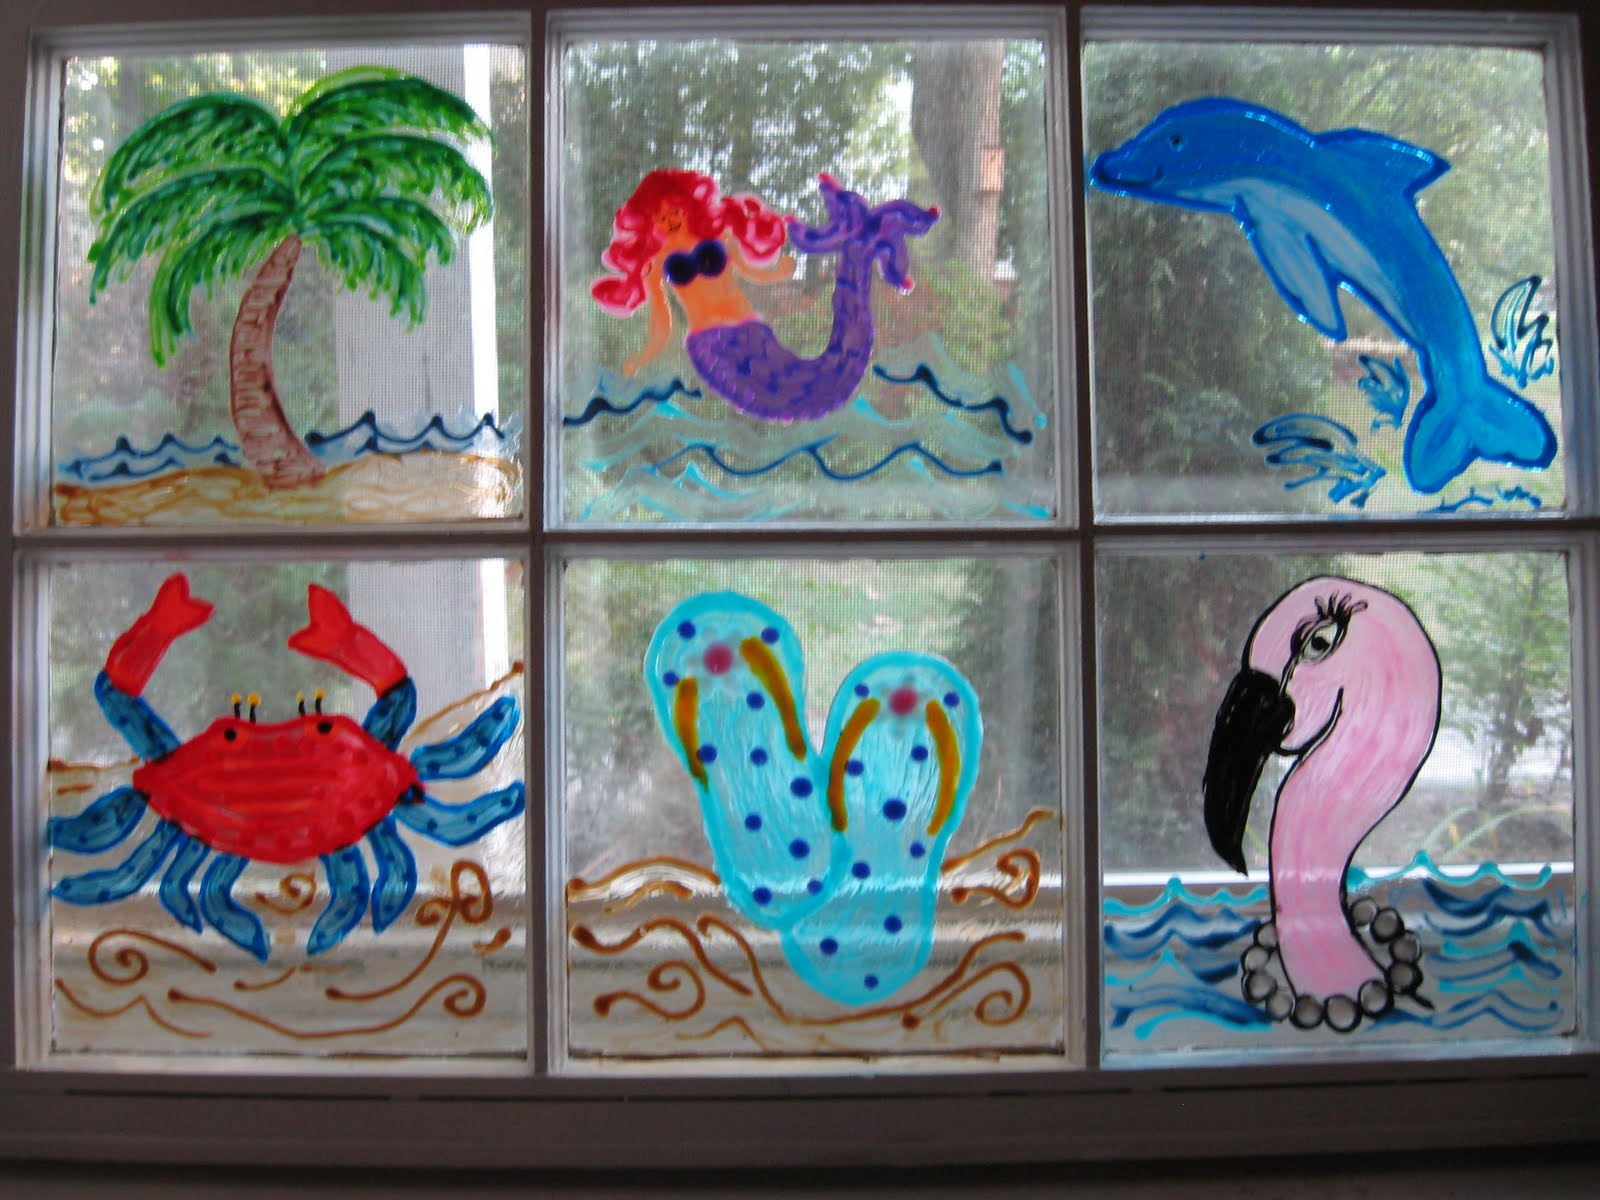 My naptime crafts beach themed painted window - Glass window painting ideas ...